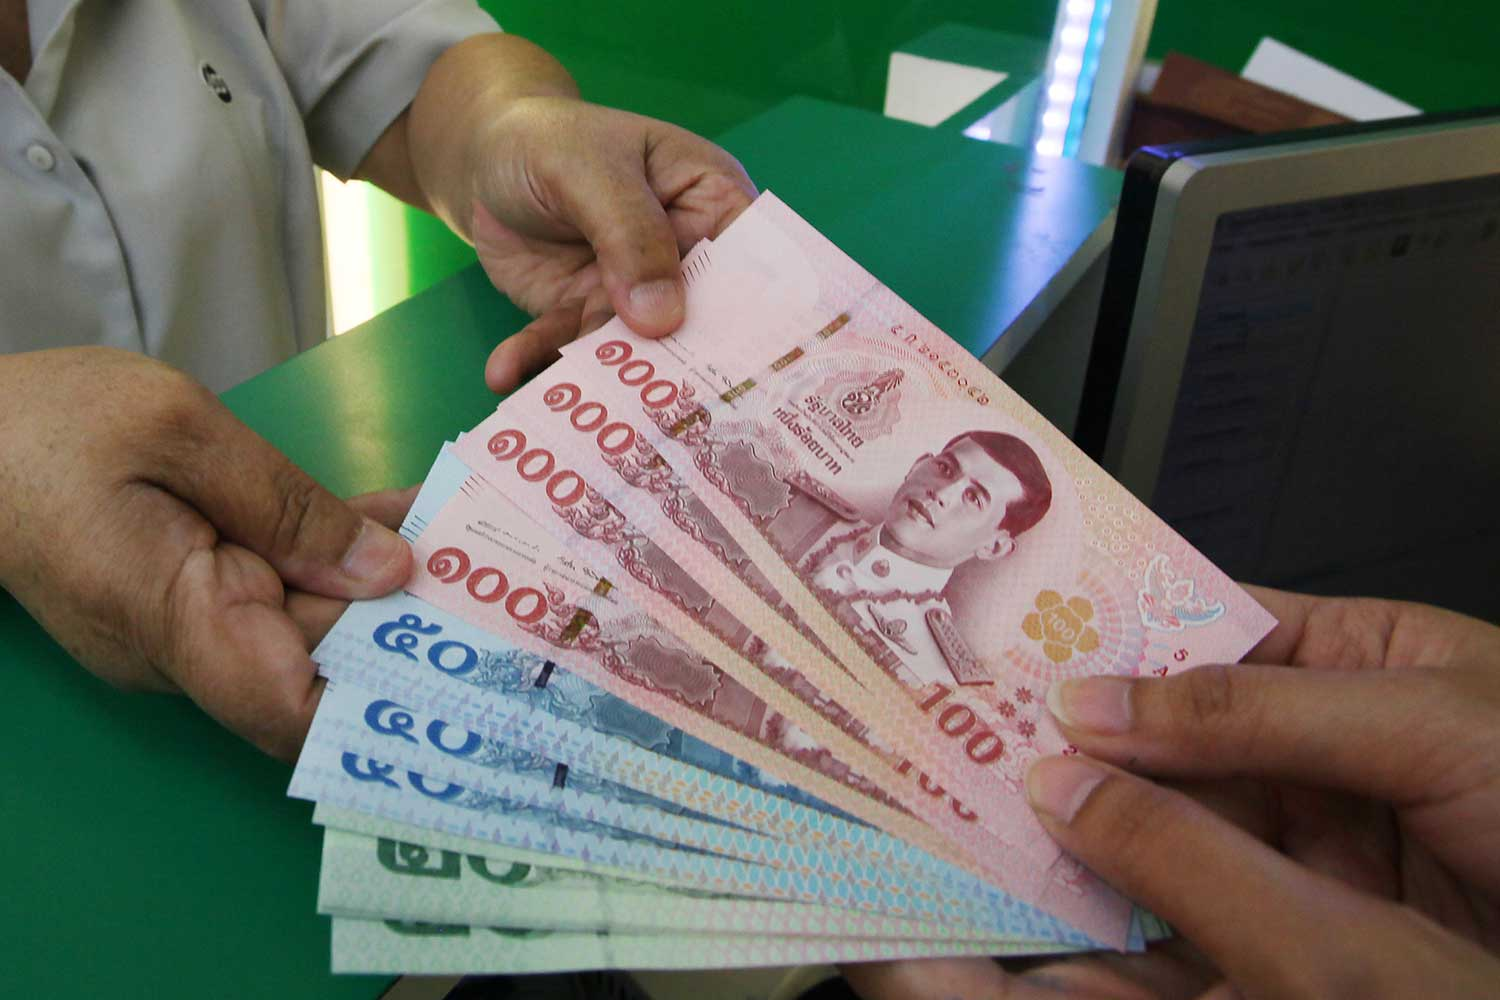 Thailand's household debt has hit an 18-year high after rising to 90.5% of GDP in the first quarter.